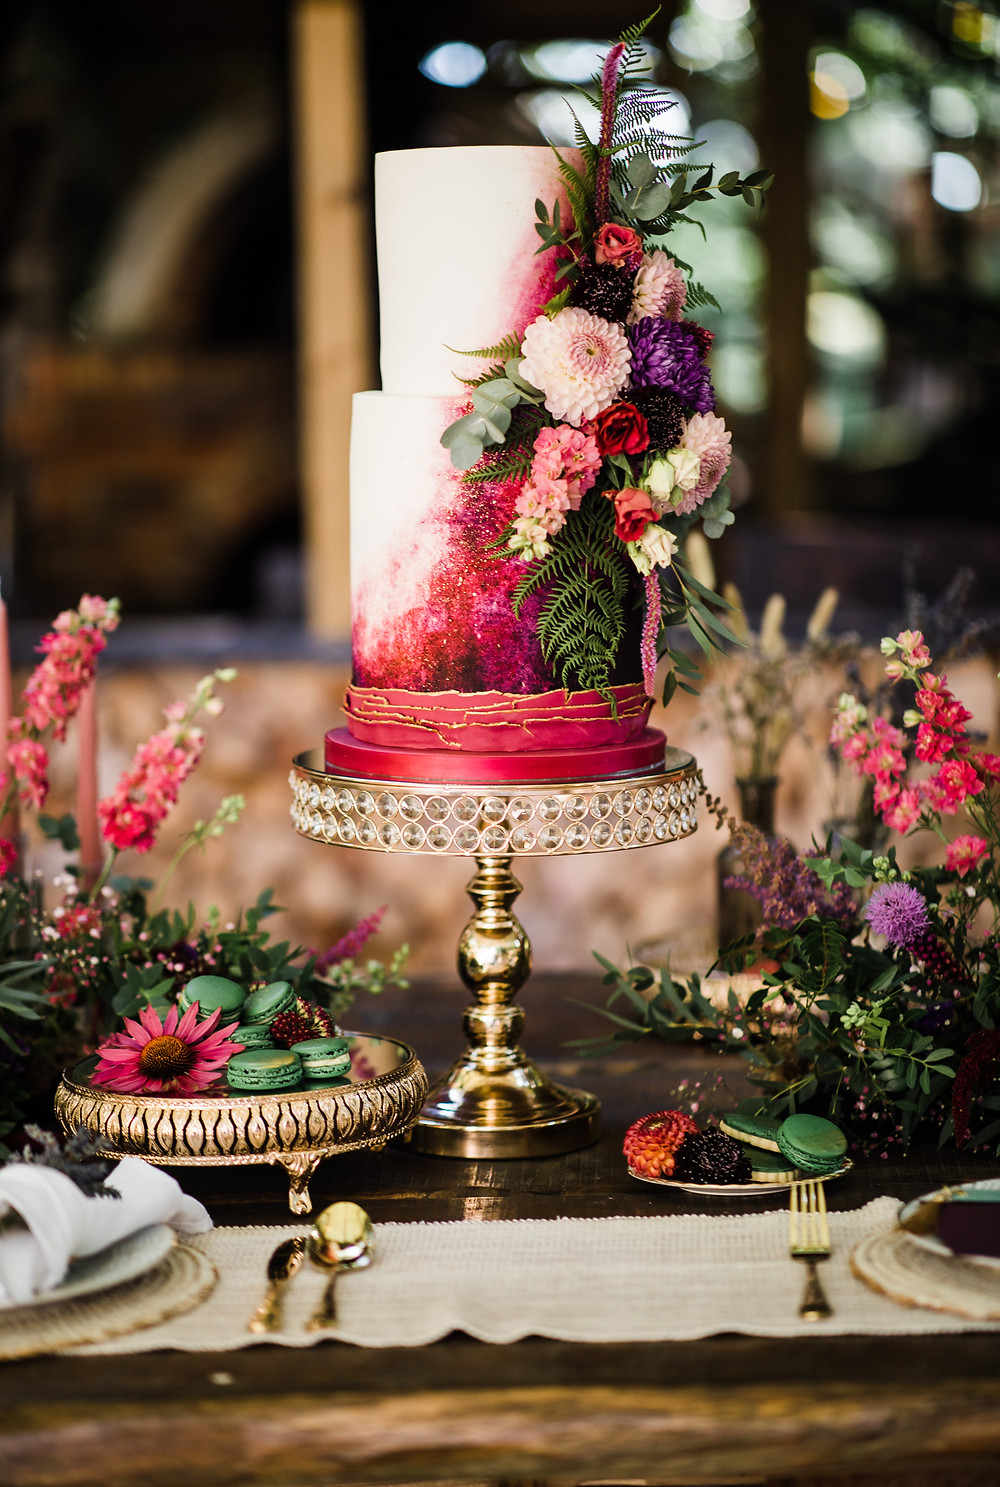 Unique and beautiful wedding cake with luxury flower decorations in pink, purple, red and green with greenery